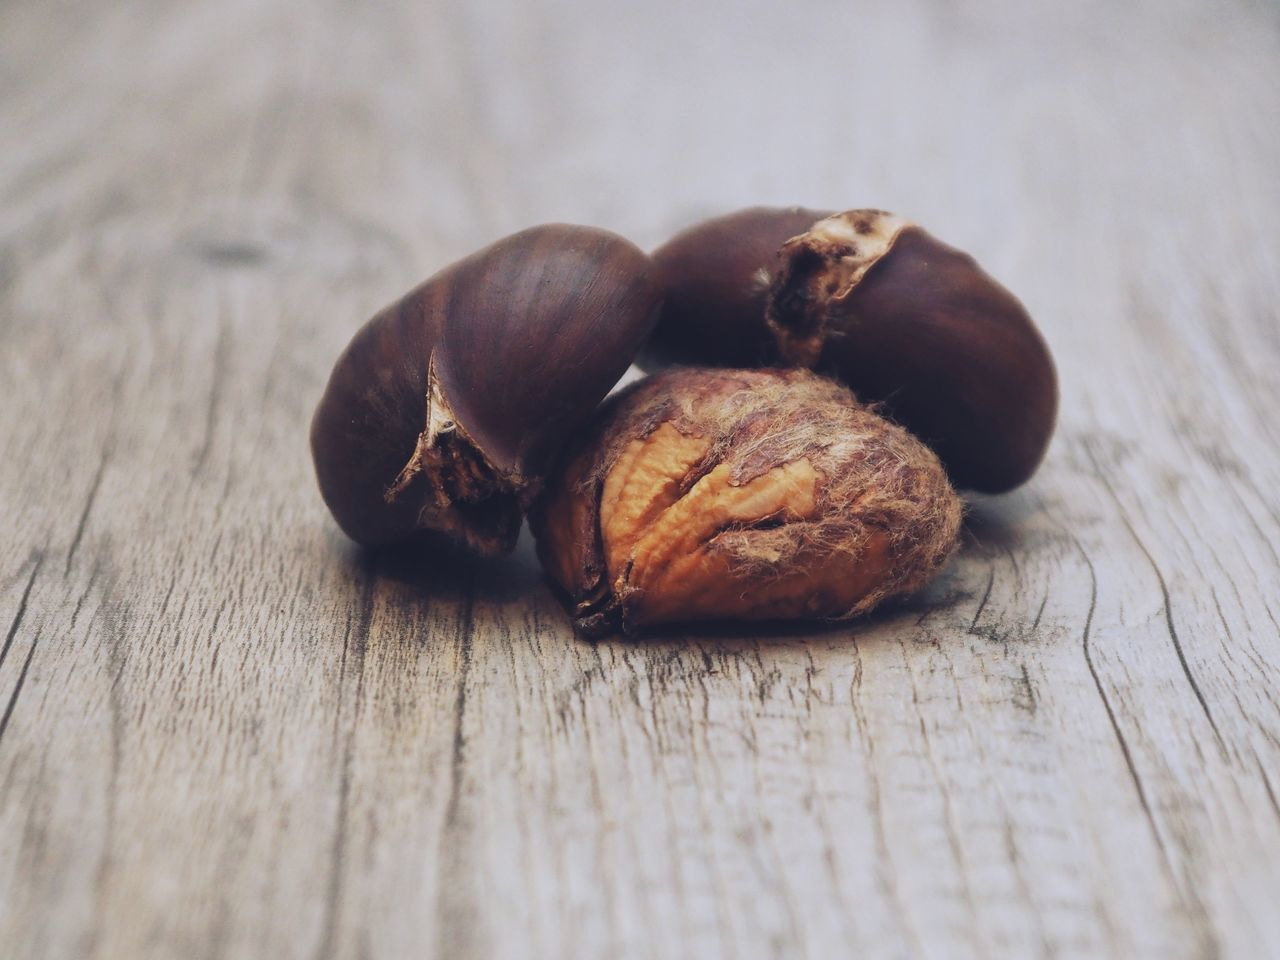 food and drink, still life, food, table, no people, nut - food, walnut, close-up, brown, healthy eating, freshness, indoors, nutshell, day